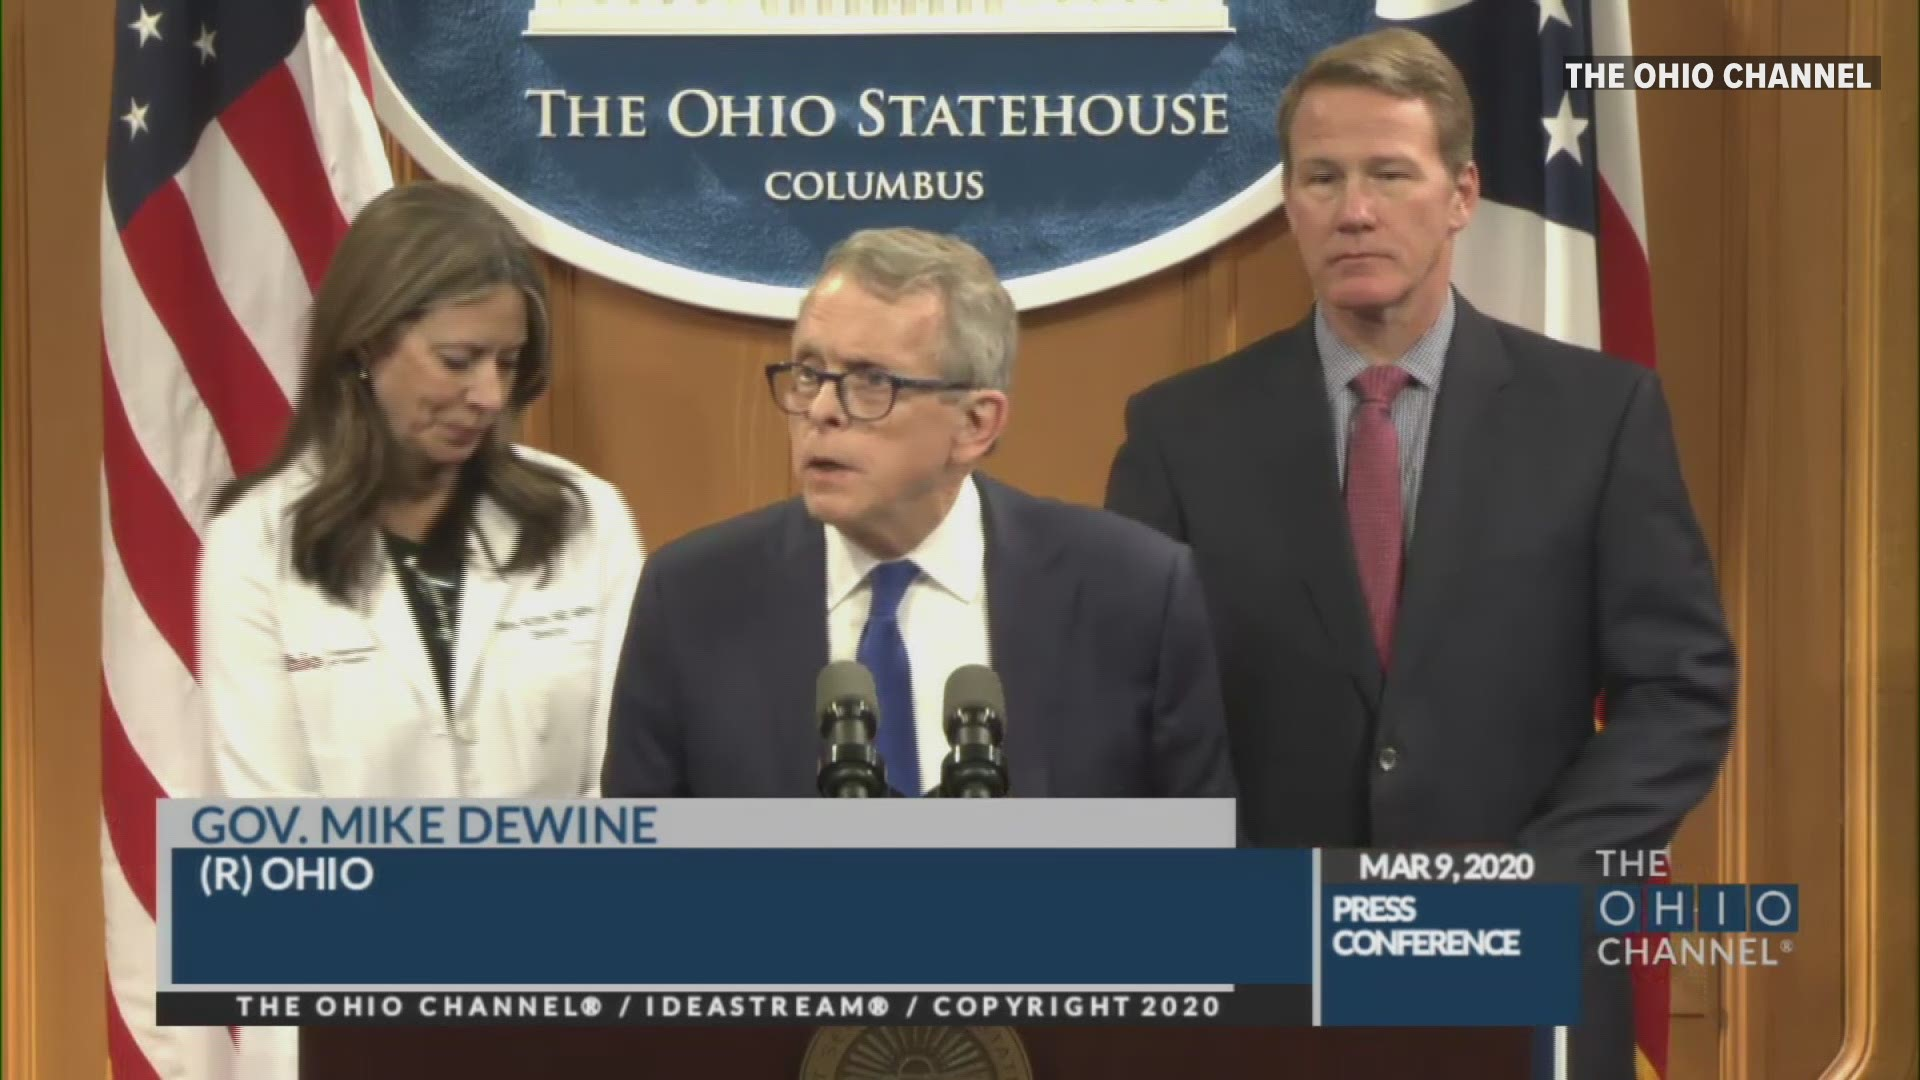 Gov Mike Dewine 3 Confirmed Cases Of Coronavirus In Ohio All In Cuyahoga County Wkyc Com